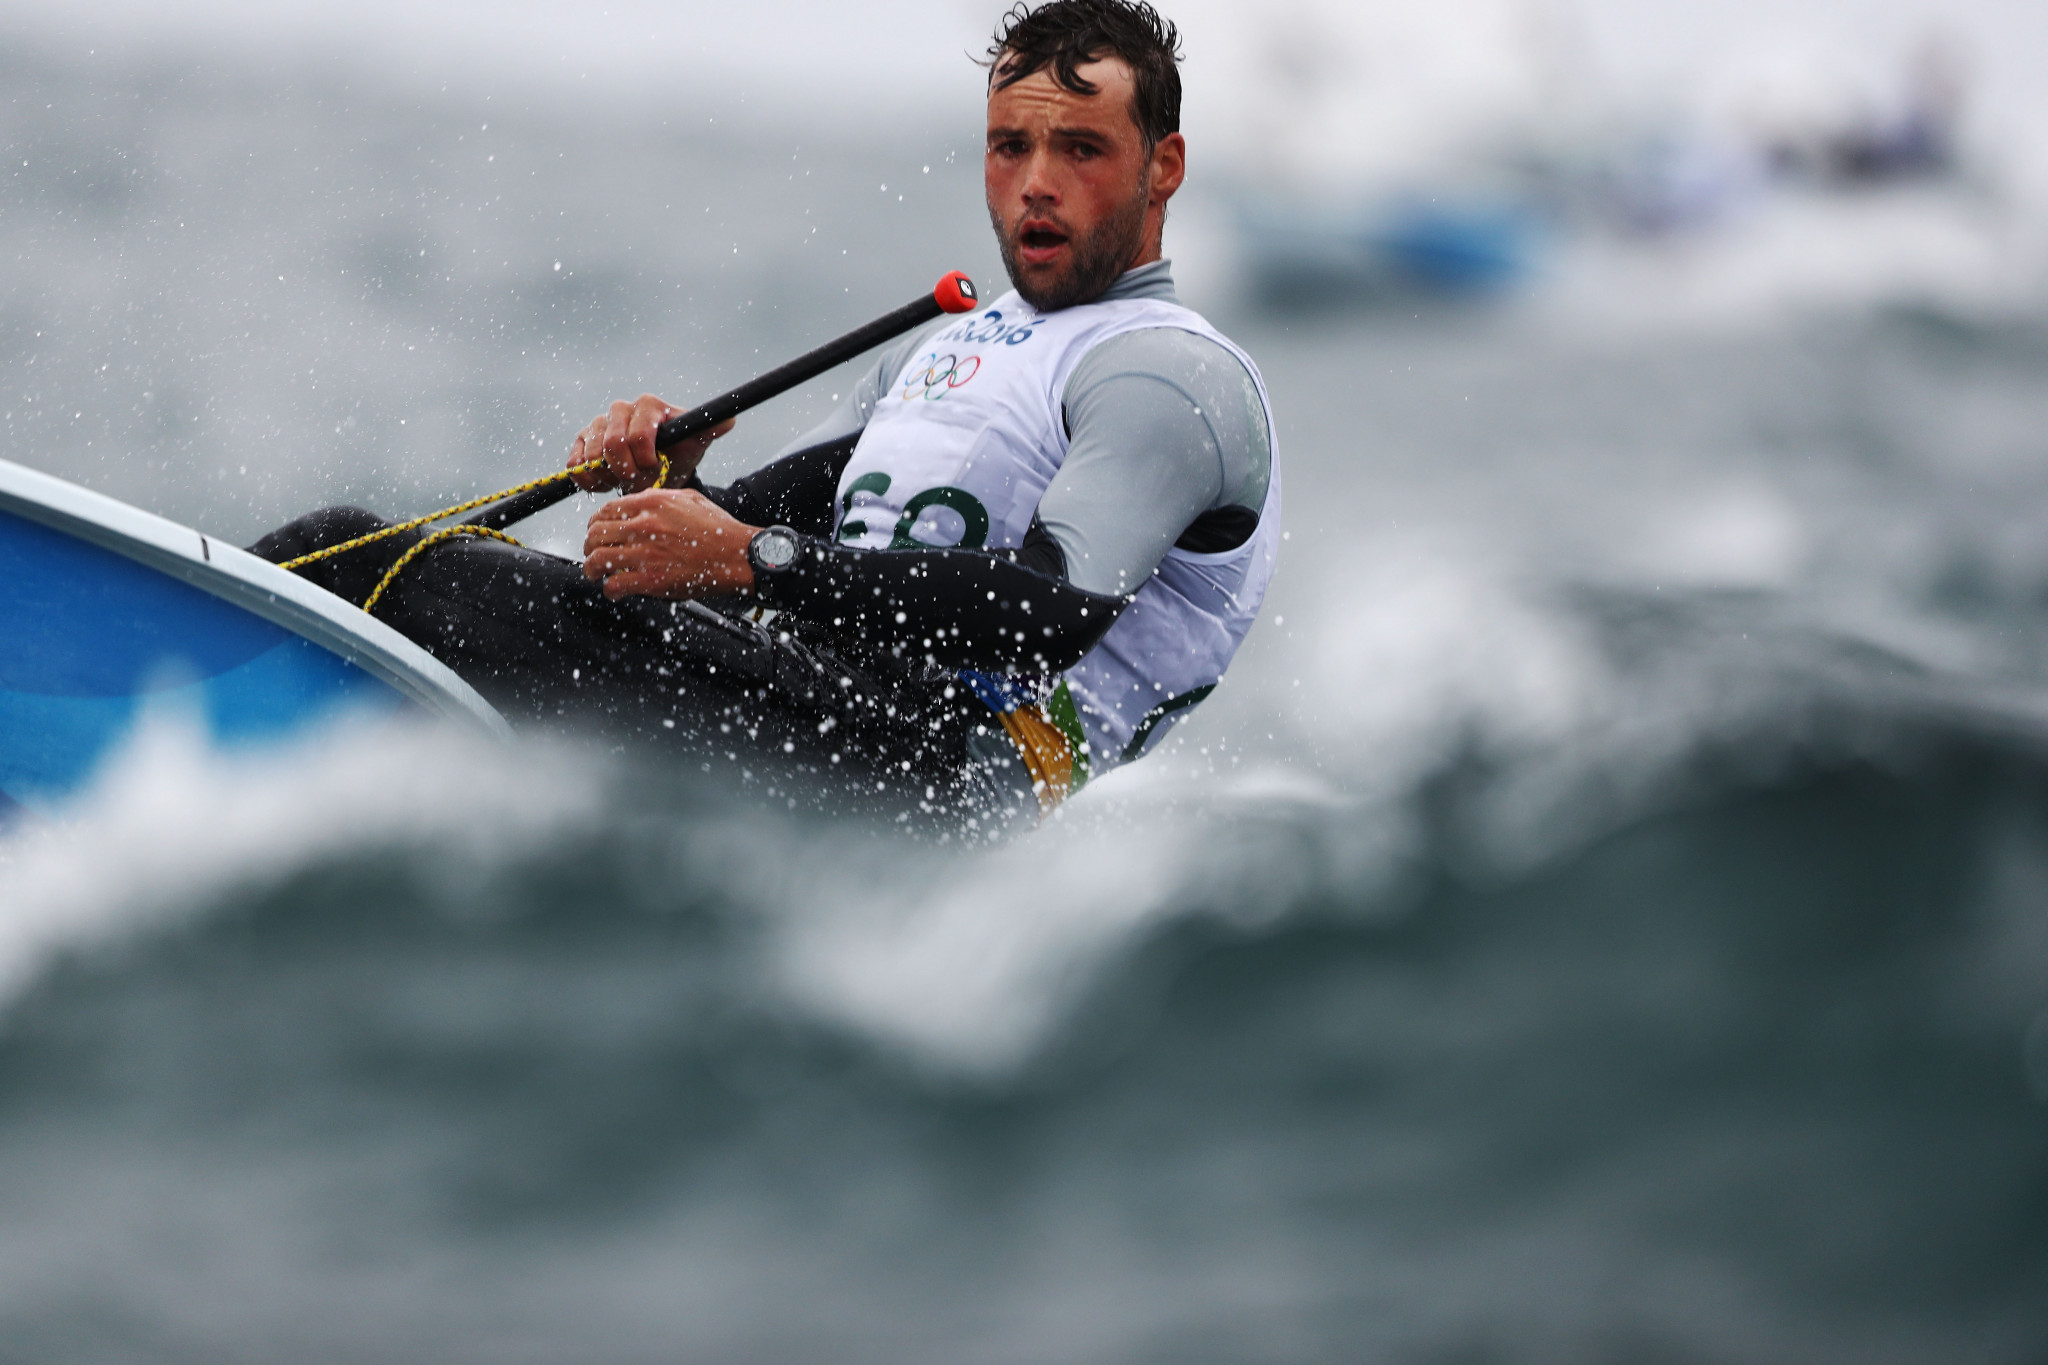 Buhl takes top spot on his own at Laser Standard World Championships